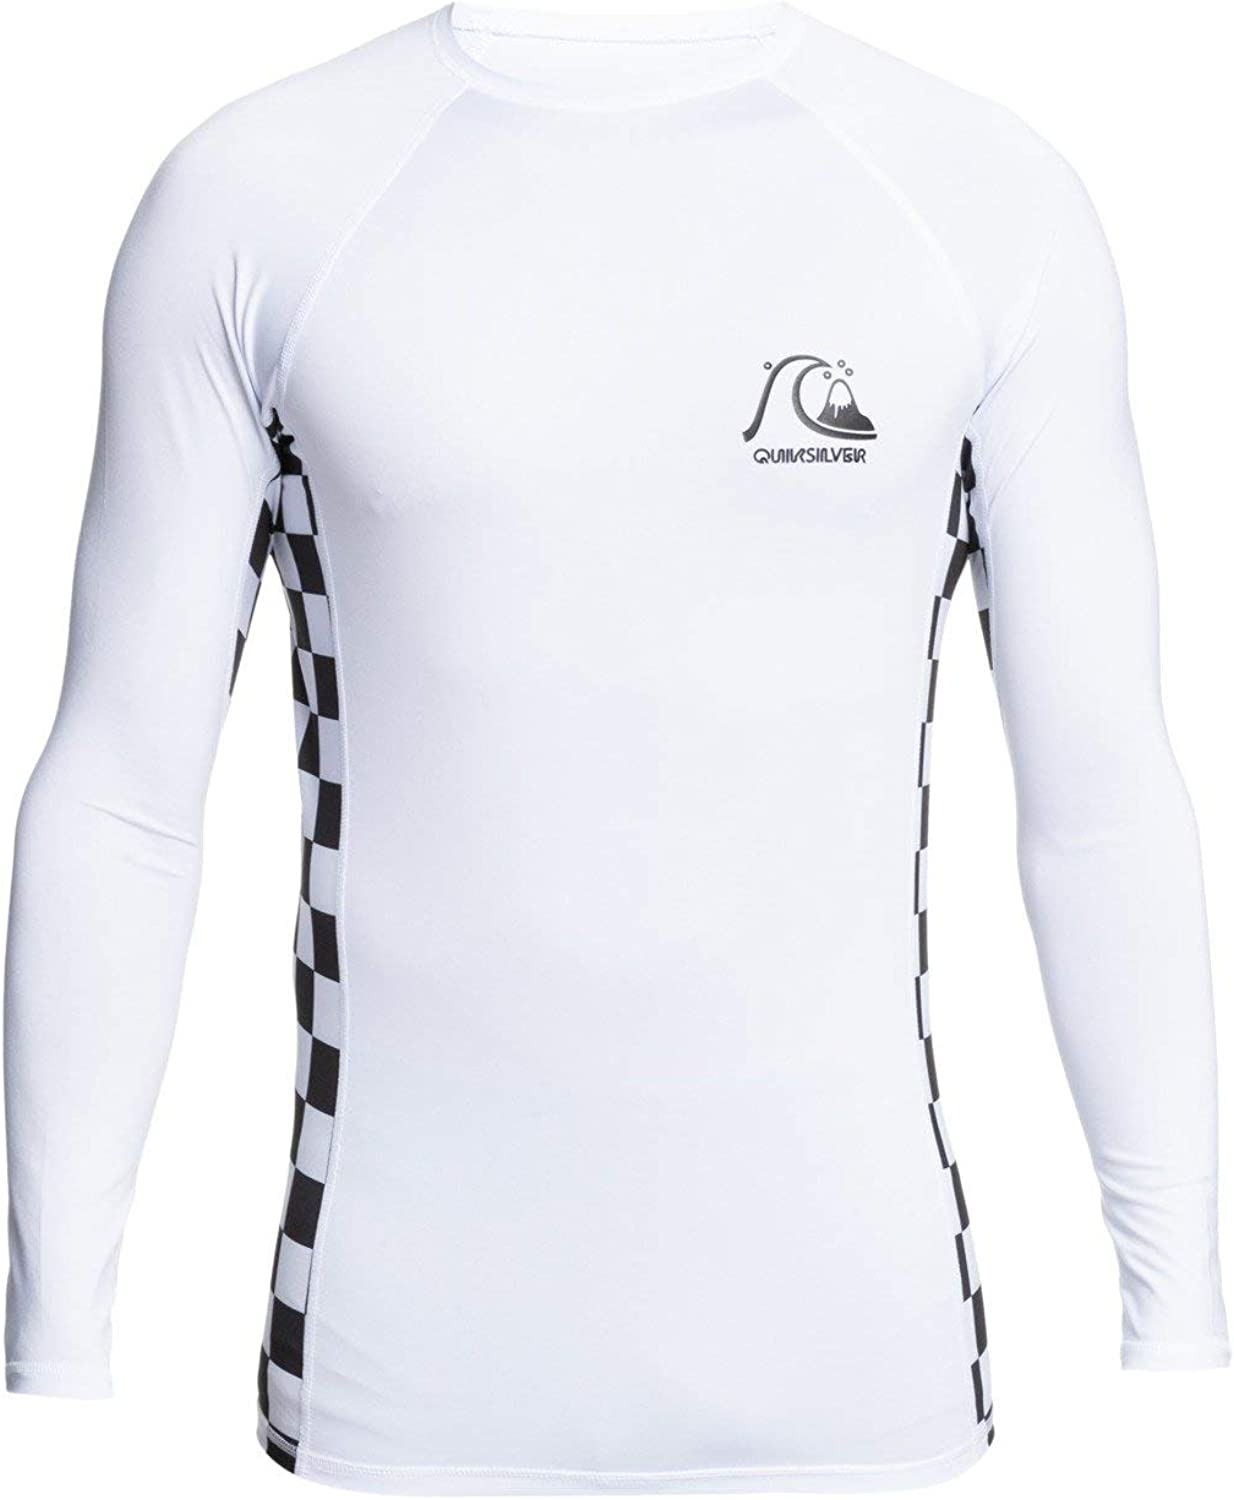 Online limited product Quiksilver 2021 spring and summer new Men's Arch This Long Sleeve Rashguard